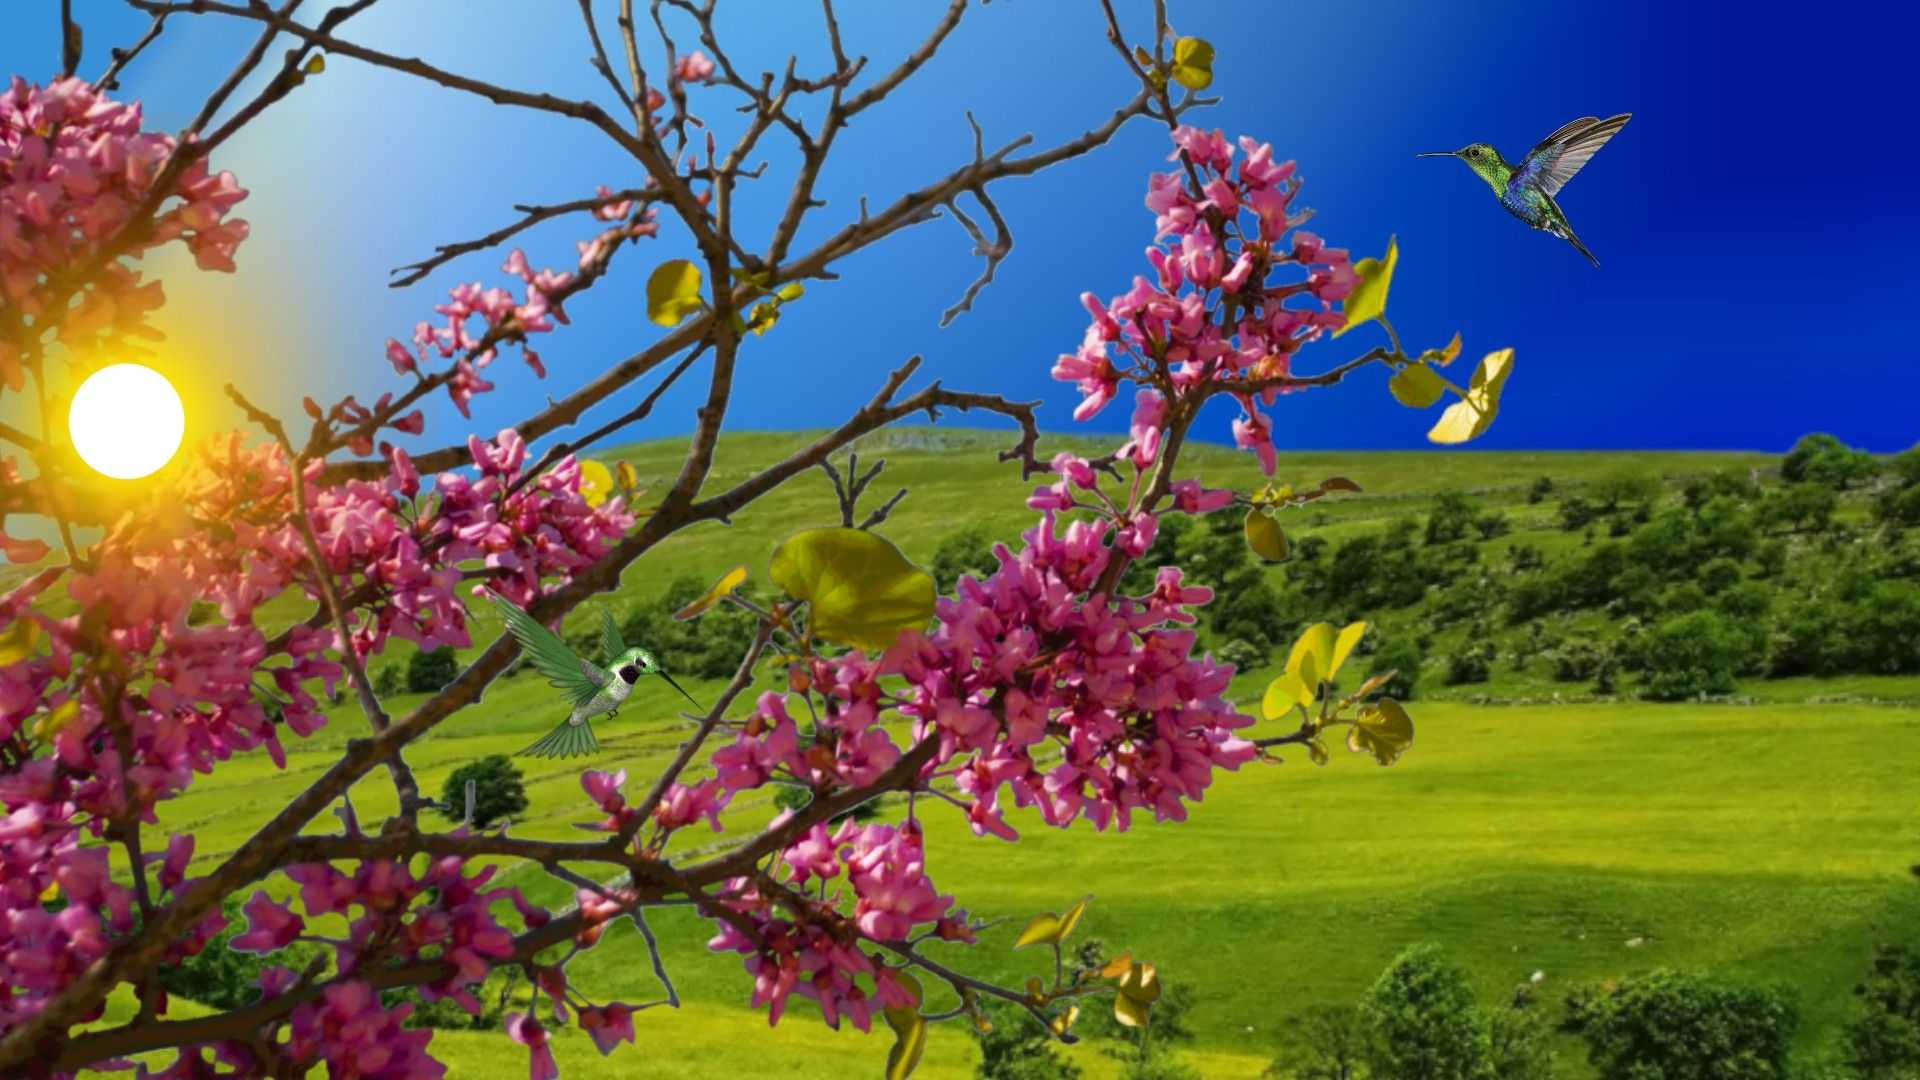 Flower Hummingbird Tree Flowers Day Sunny Spring Hd Wallpapers For ...